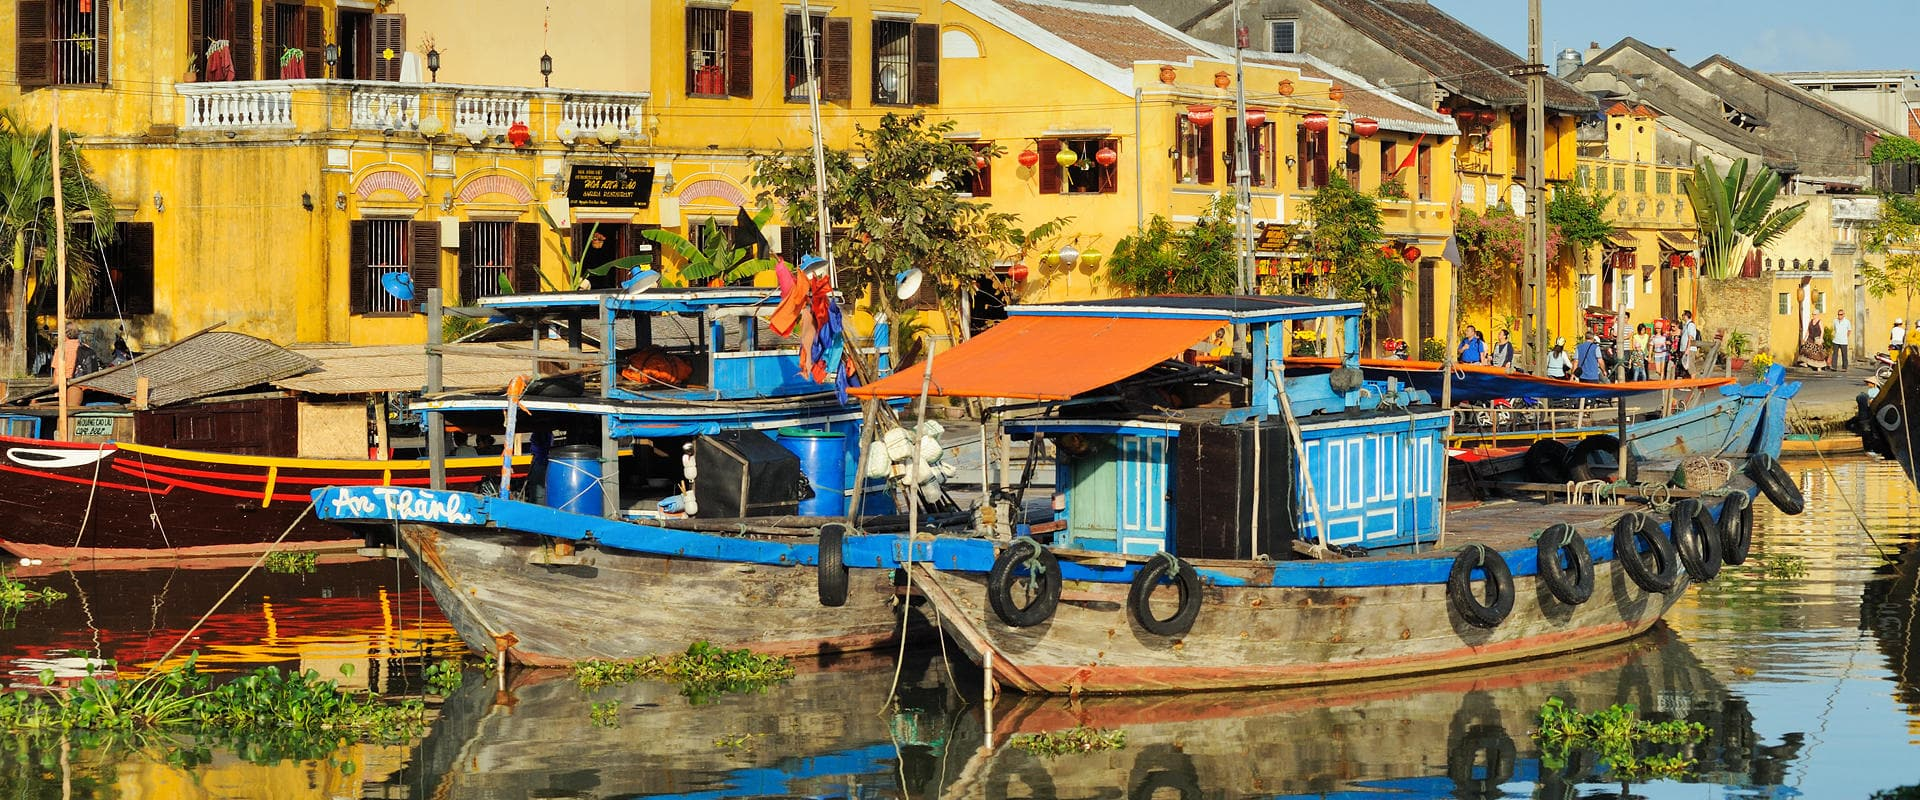 The Grantourismo Travels Guide to Hoi An, Vietnam. Copyright © 2017 Terence Carter / Grantourismo. All Rights Reserved.